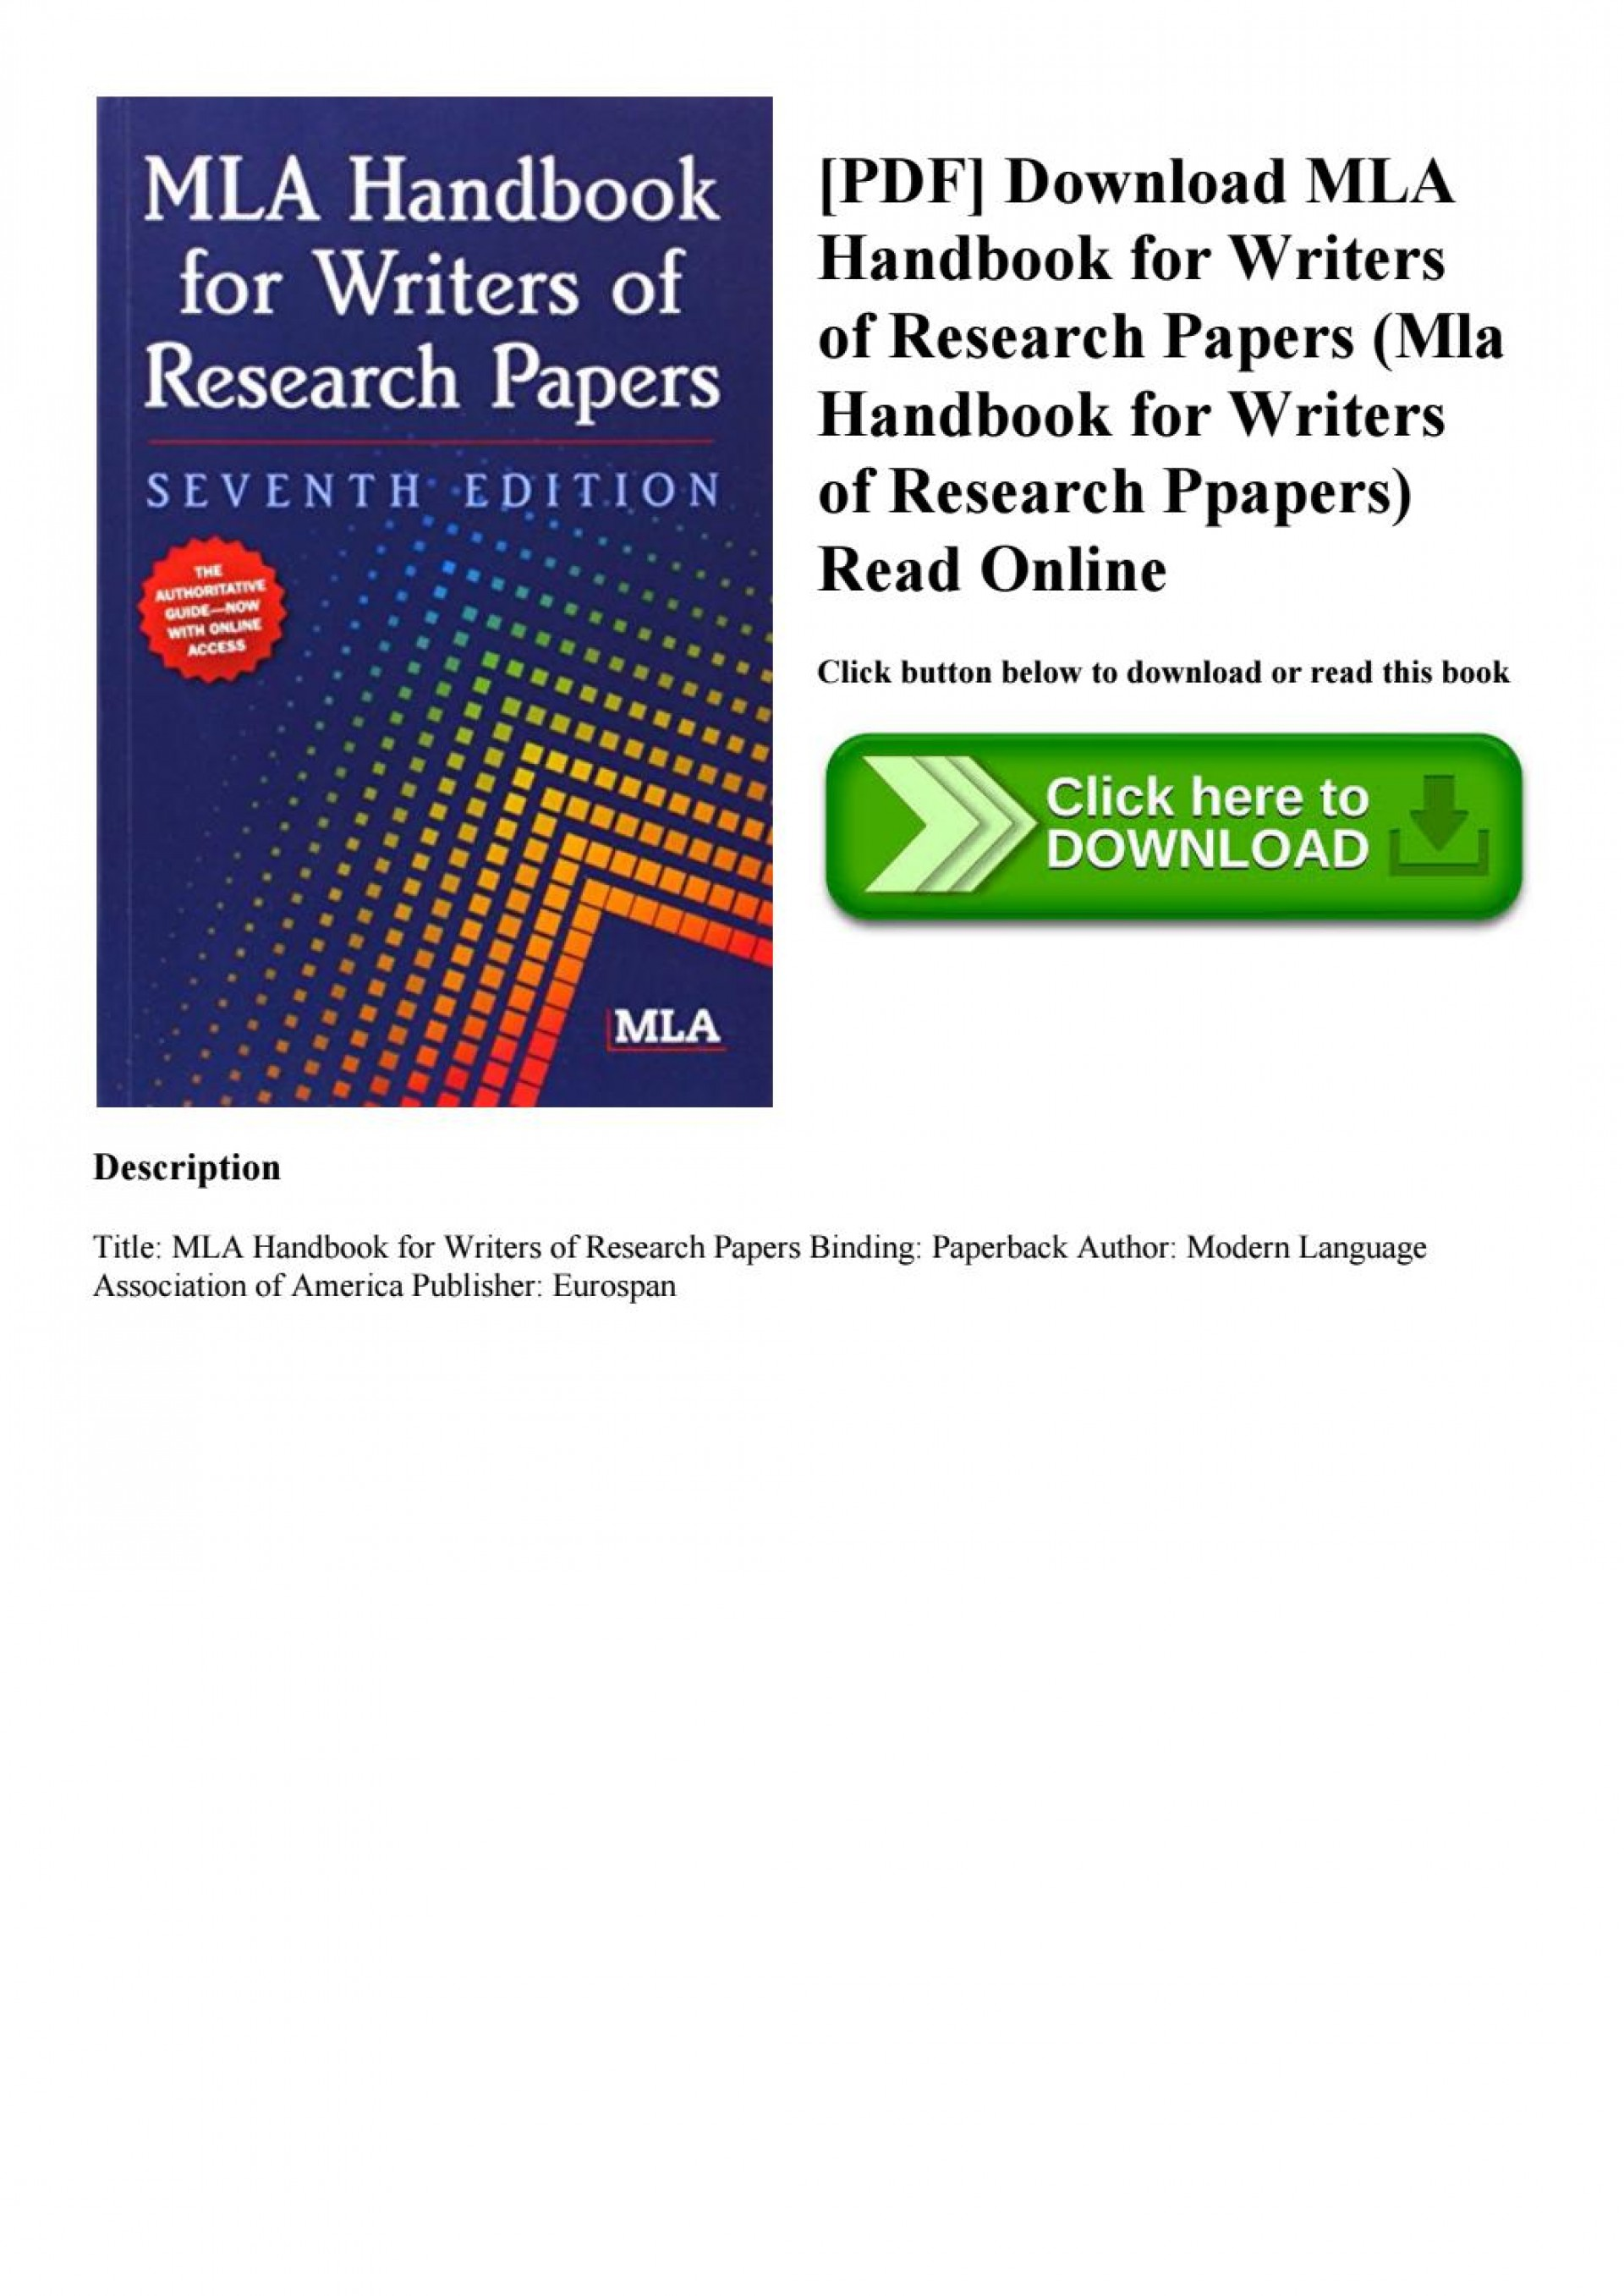 003 Page 1 Research Paper Mla Handbook For Writing Frightening Papers Writers Of 8th Edition Pdf Free Download According To The 1920